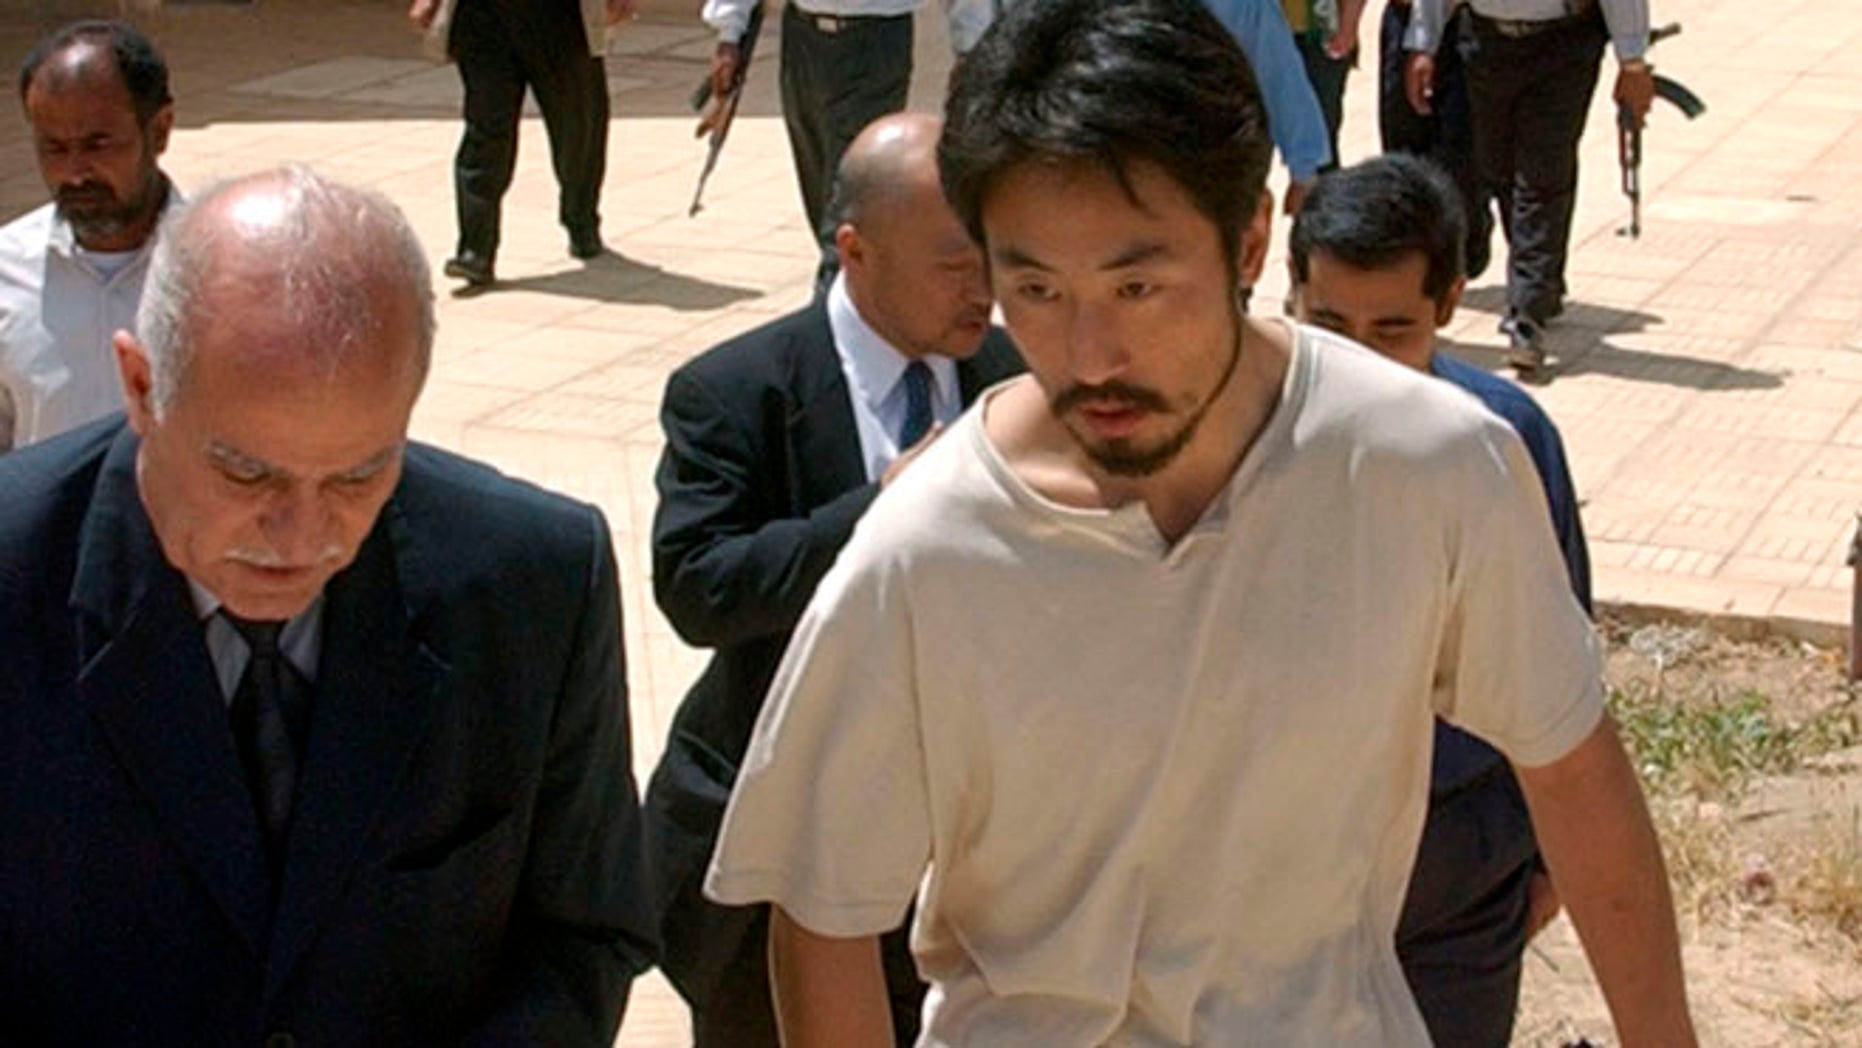 April 17, 2004: Japanese freelance journalist Jumpei Yasuda, right, is escorted after being released at Umm Al-Qura mosque in Baghdad, Iraq.  Worries are growing about the whereabouts of the freelance Japanese journalist, last heard from late June, 2015,  in Syria.